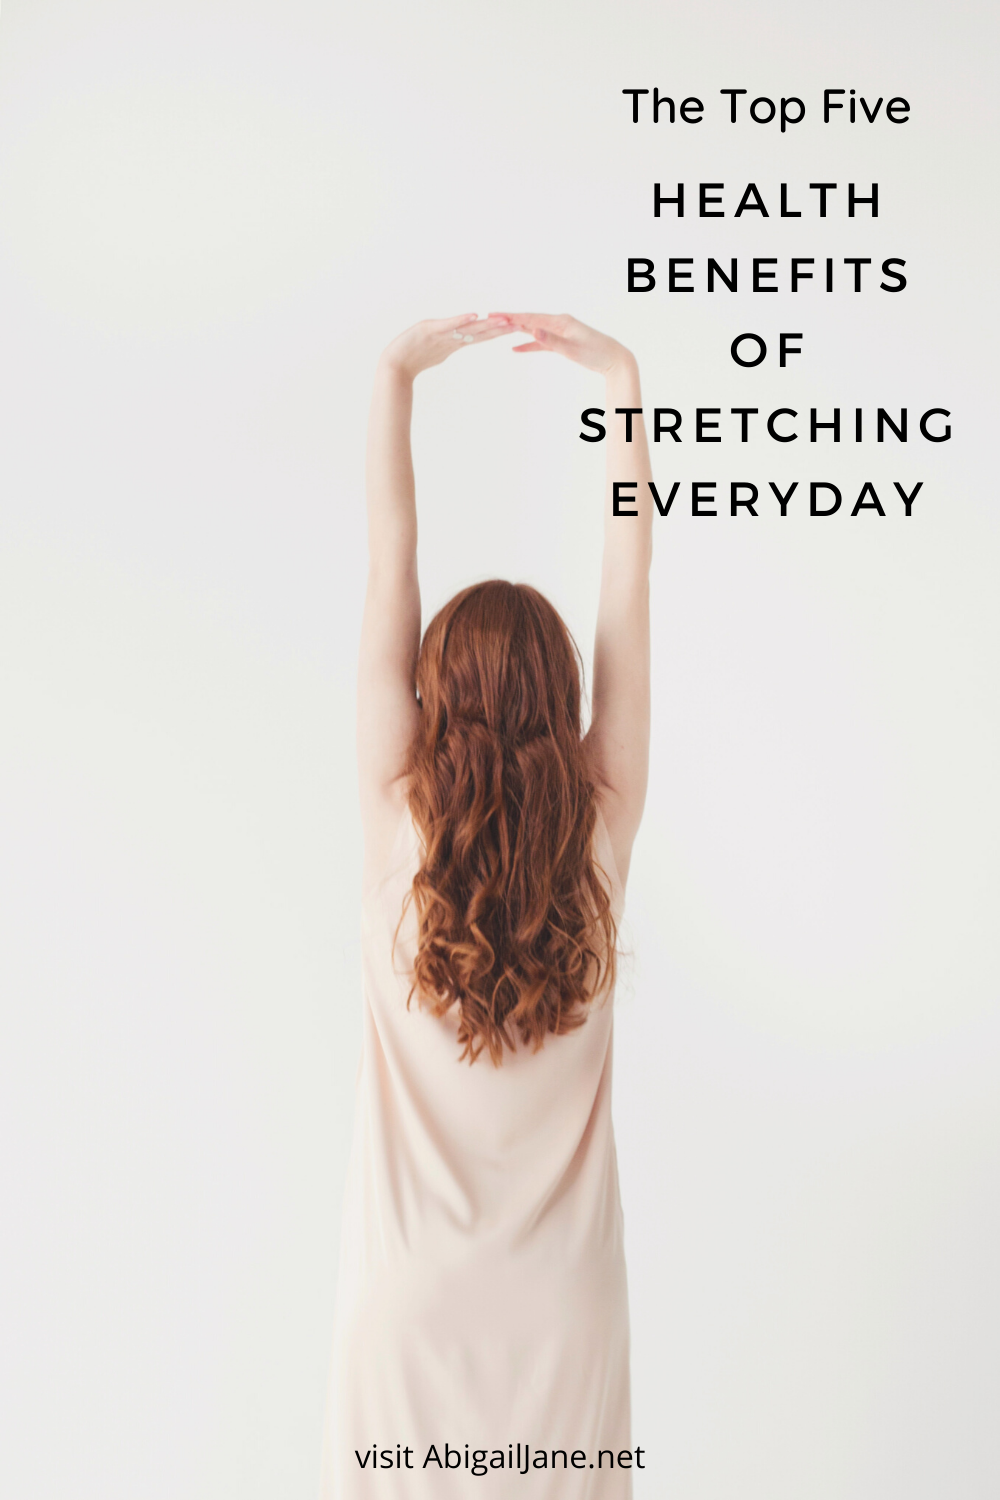 Have you ever wondered how stretching benefits health? What the health benefits of stretching were and how they might apply to you? That is what we are discussing in todays article! All of the benefits of daily stretching for your health and body. We are talking about having a daily stretch routine and daily stretches for beginners. As well as how to stretch comfortably and safely. #ad #affiliatelink #dailystretchesforflexability #stretchingforhealth #dailystretchinghealthbenefits #stayingactive